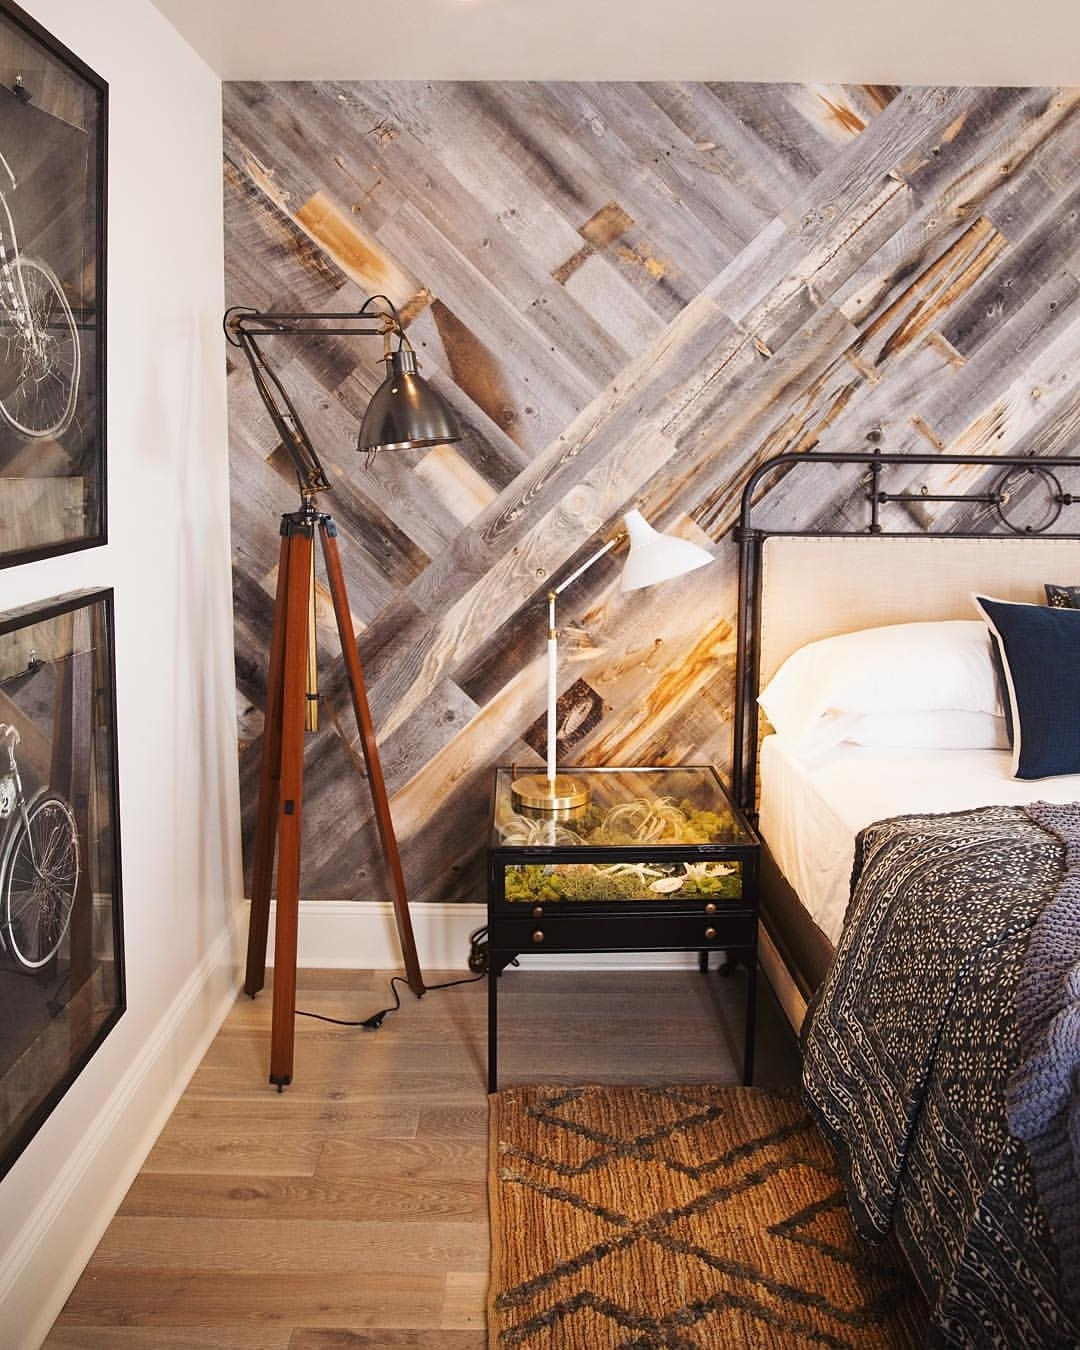 Diy Easy Peel And Stick Wood Wall Decor For Most Up To Date Wood Paneling Wall Accents (View 6 of 15)